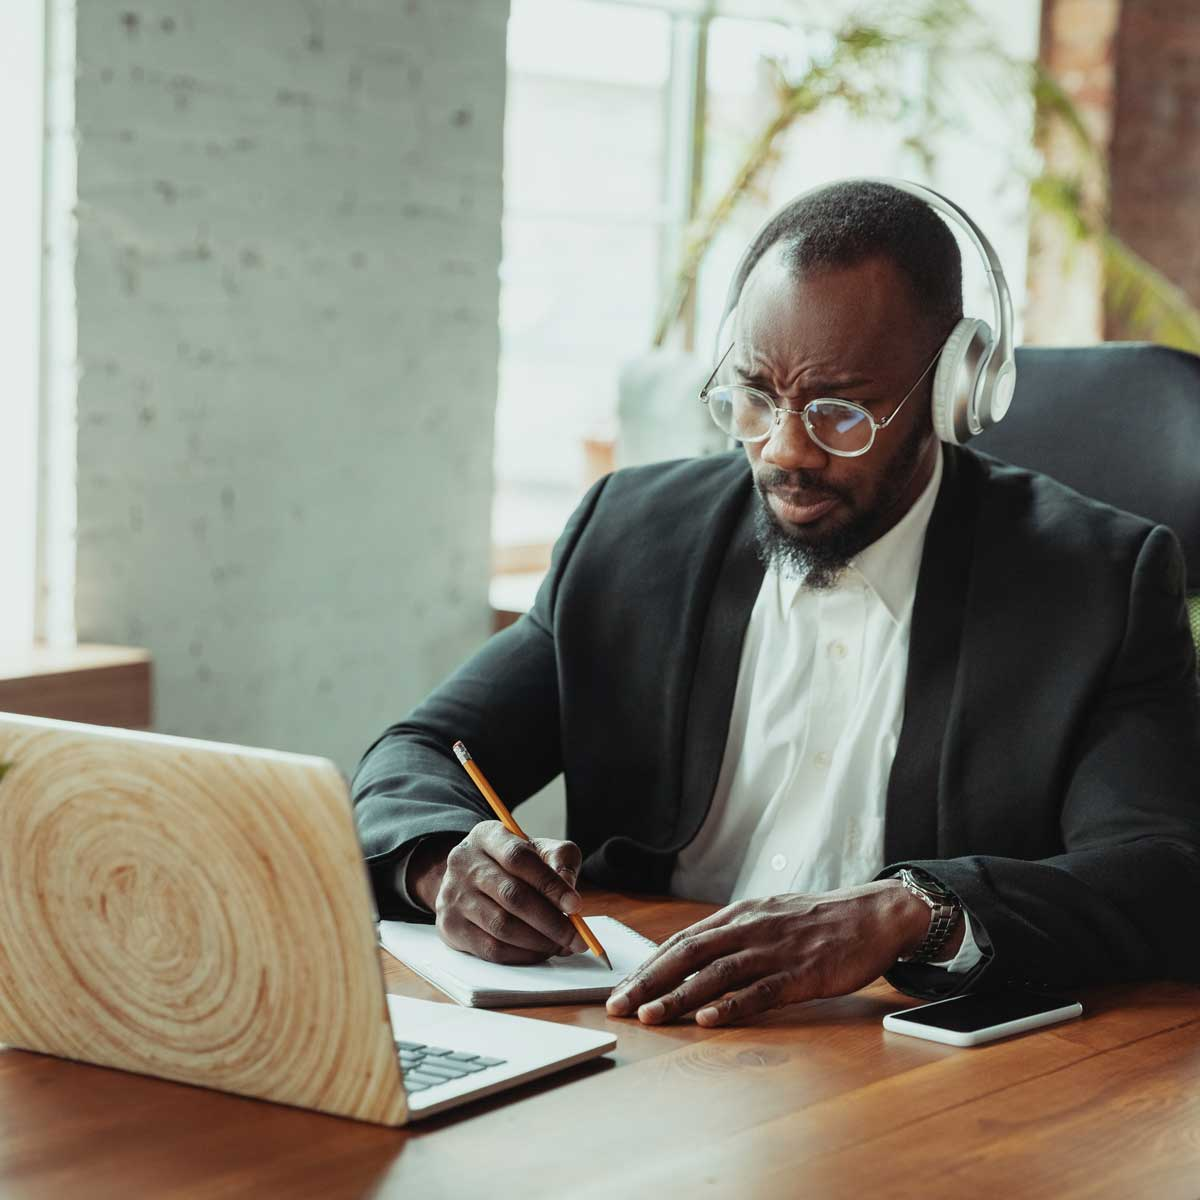 Businessman or student working from home being isolated or keep quarantine 'cause of coronavirus. African-american man using laptop, tablet and headphones. Online conference, lesson, remote office.